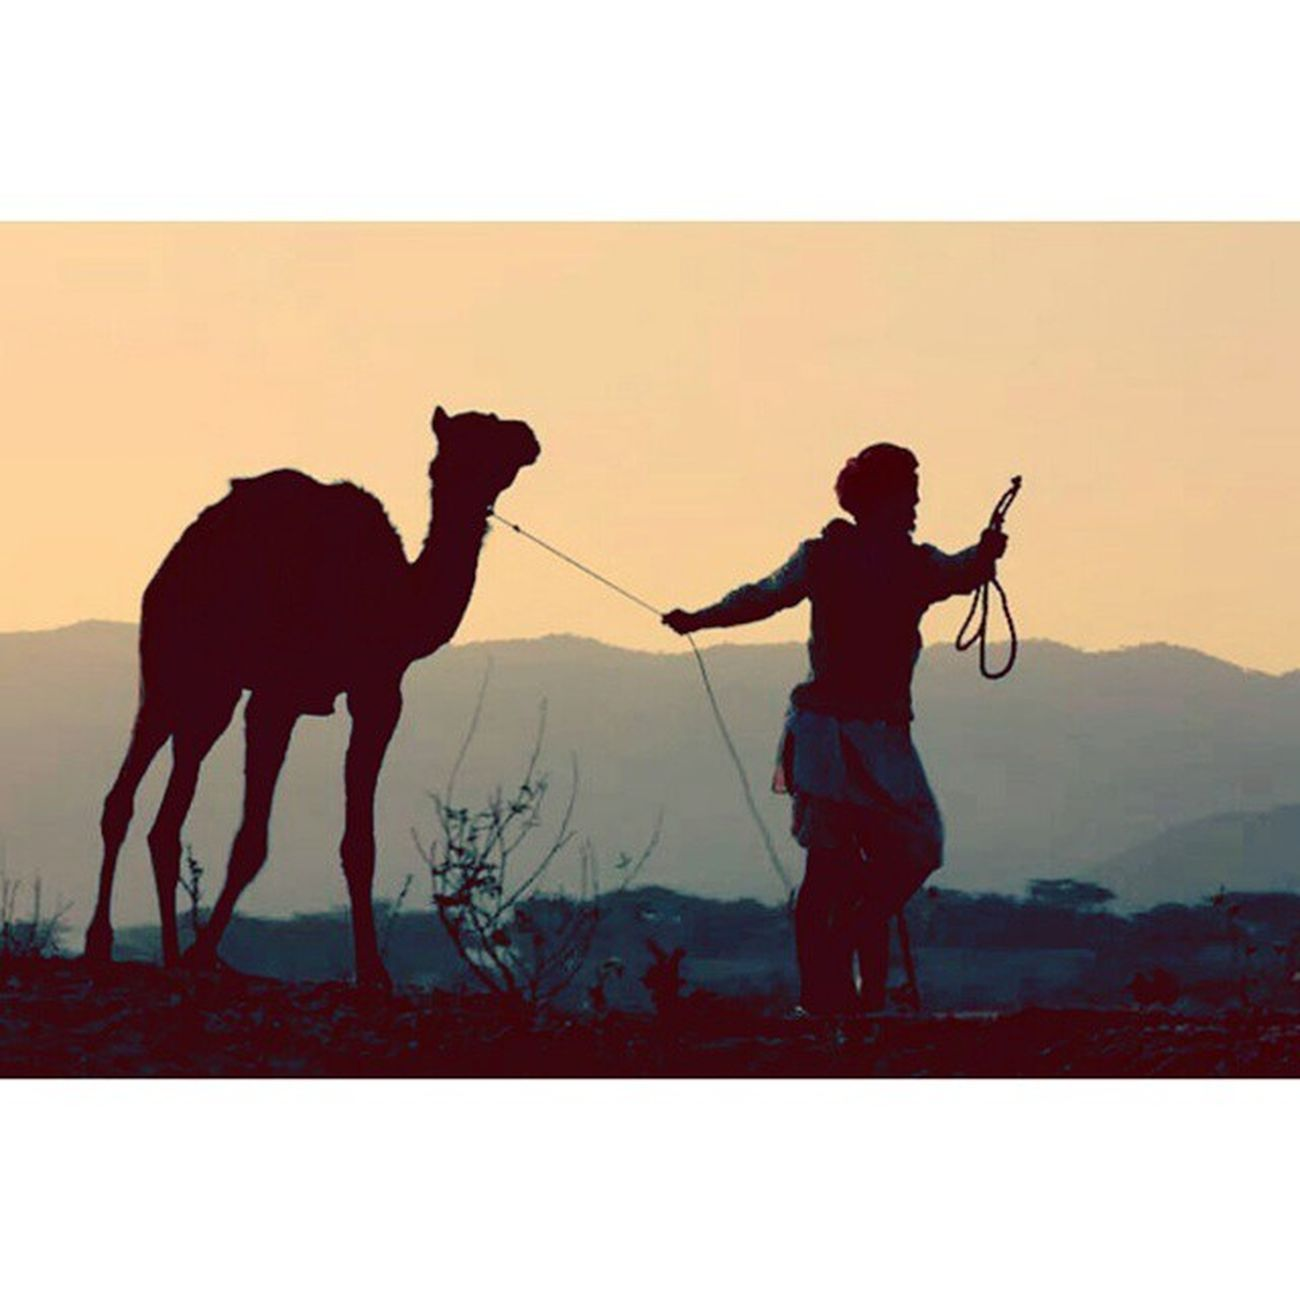 Pushkar Fair 2013 Rajasthan India Camel Desert Sky Golden Megical Music Art Love Folk Culture Shadow Rebari Travel Life Long Missing Once Again This Year joinmeinpushkar